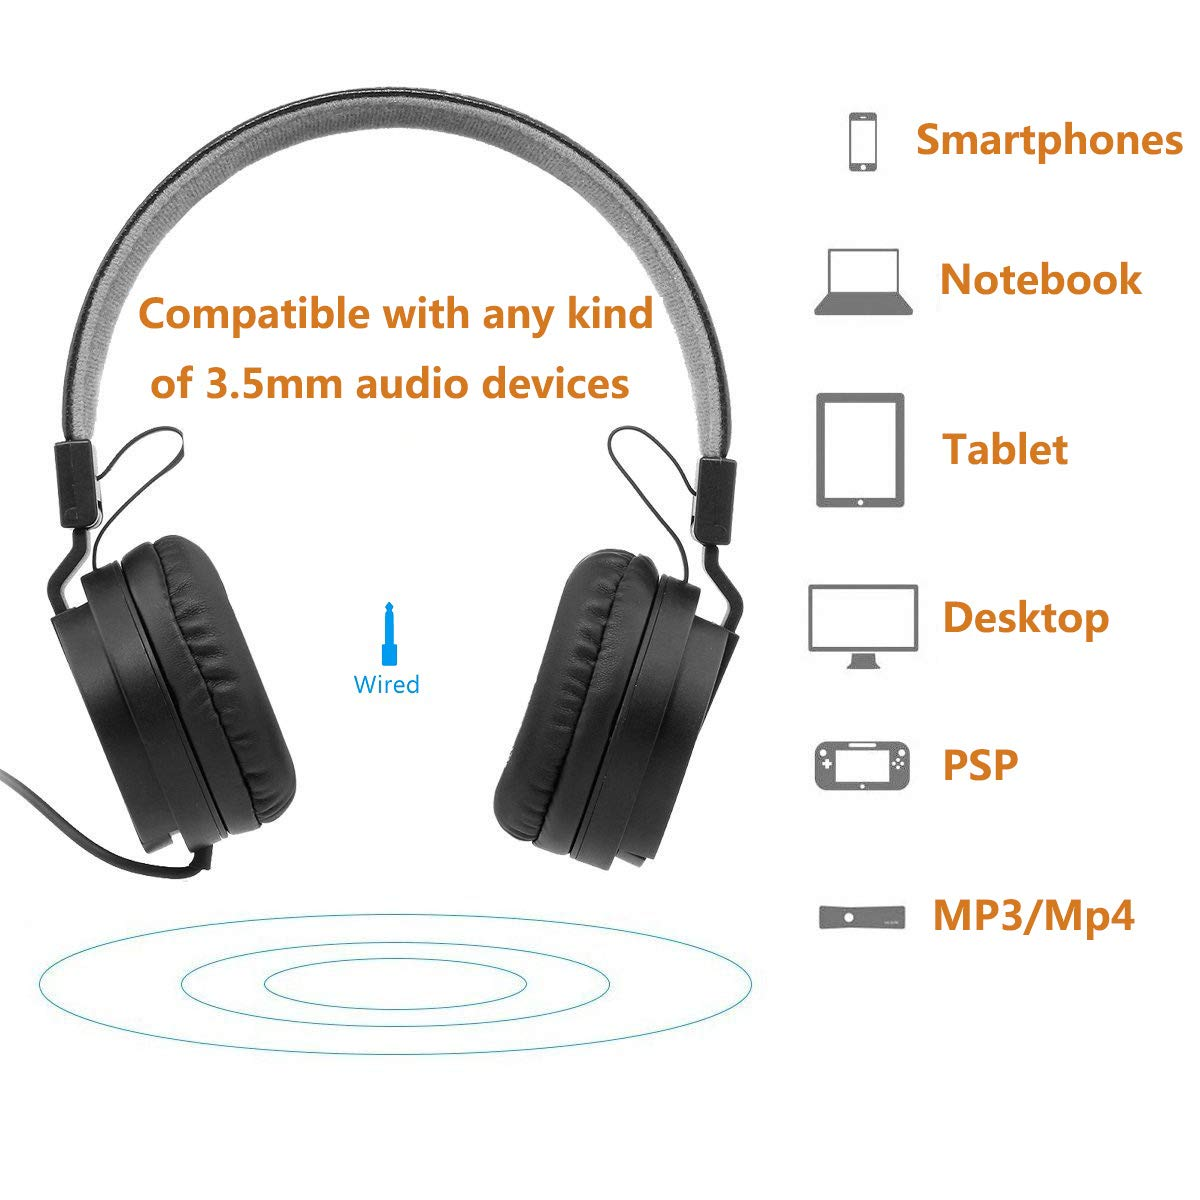 MONODEAL Kids Active Noise Cancelling Headphones, Children Girls Boys Teens Adults Foldable On Ear Headphones for Airplane Travel, Wired Headset Compatible with iPad/Cellphones/Computer/Tablet/MP3,4